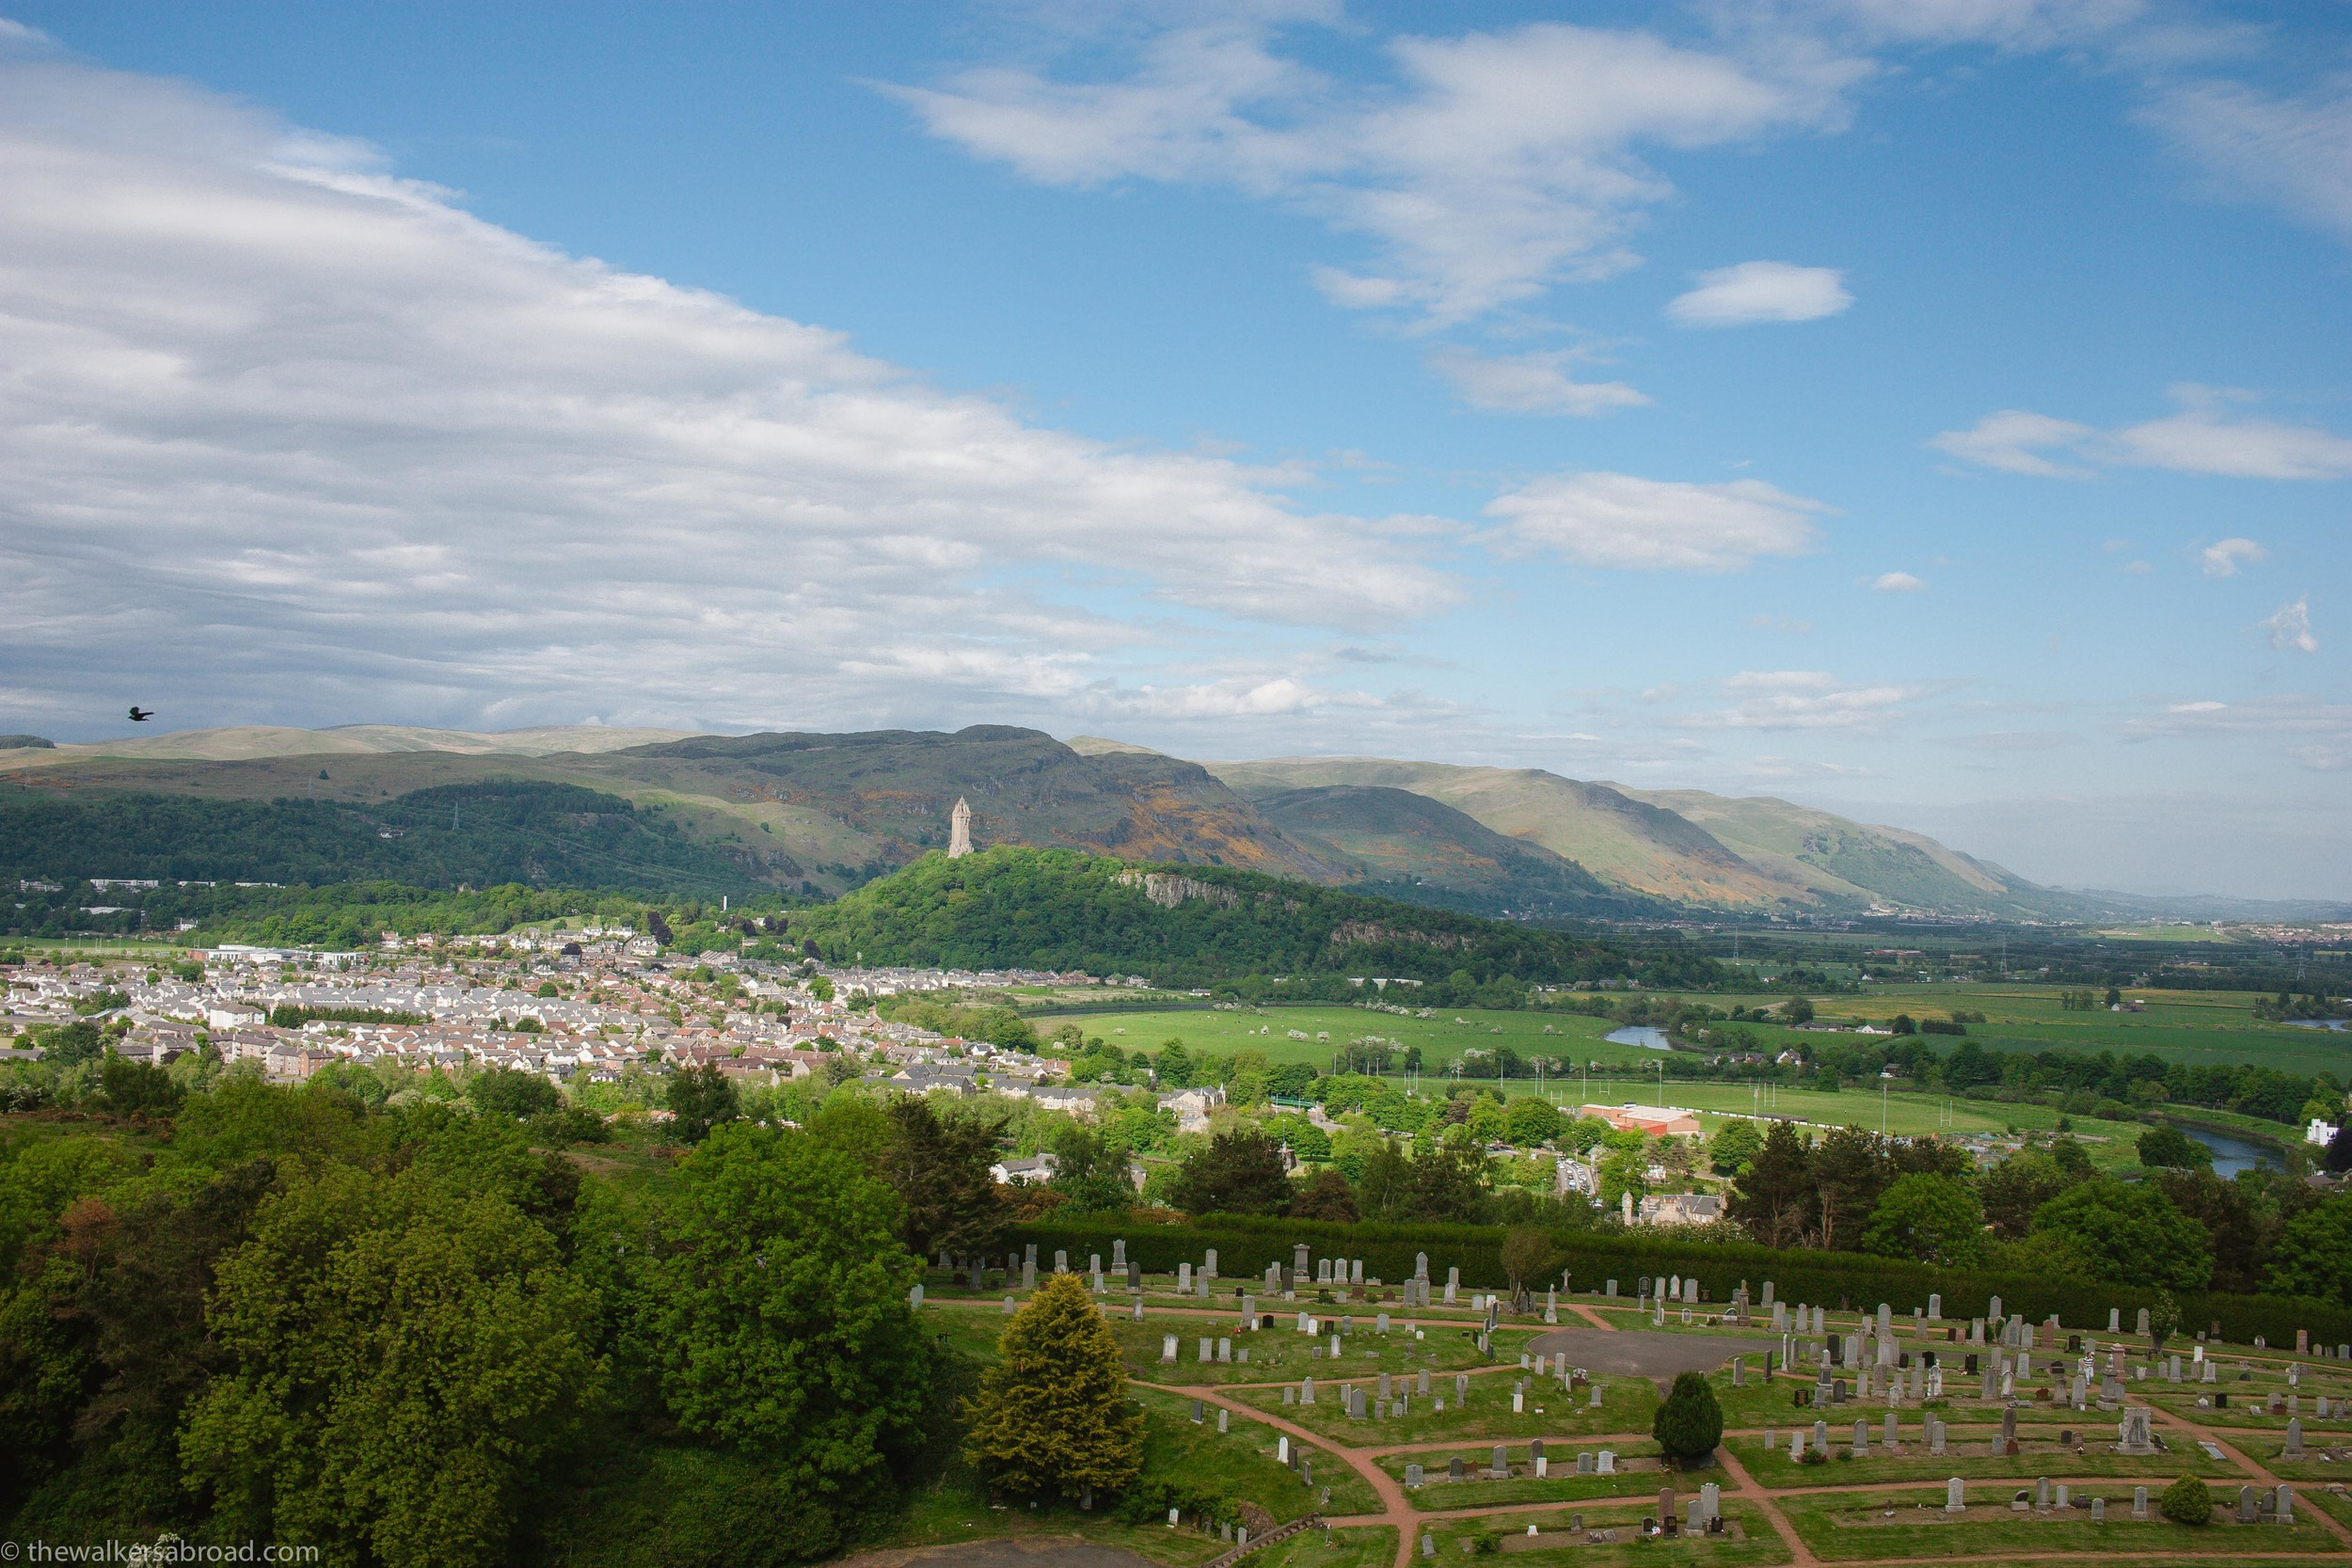 Looking towards the William Wallace Monument. We have excellent intentions of someday going there and climbing the steps to the top.